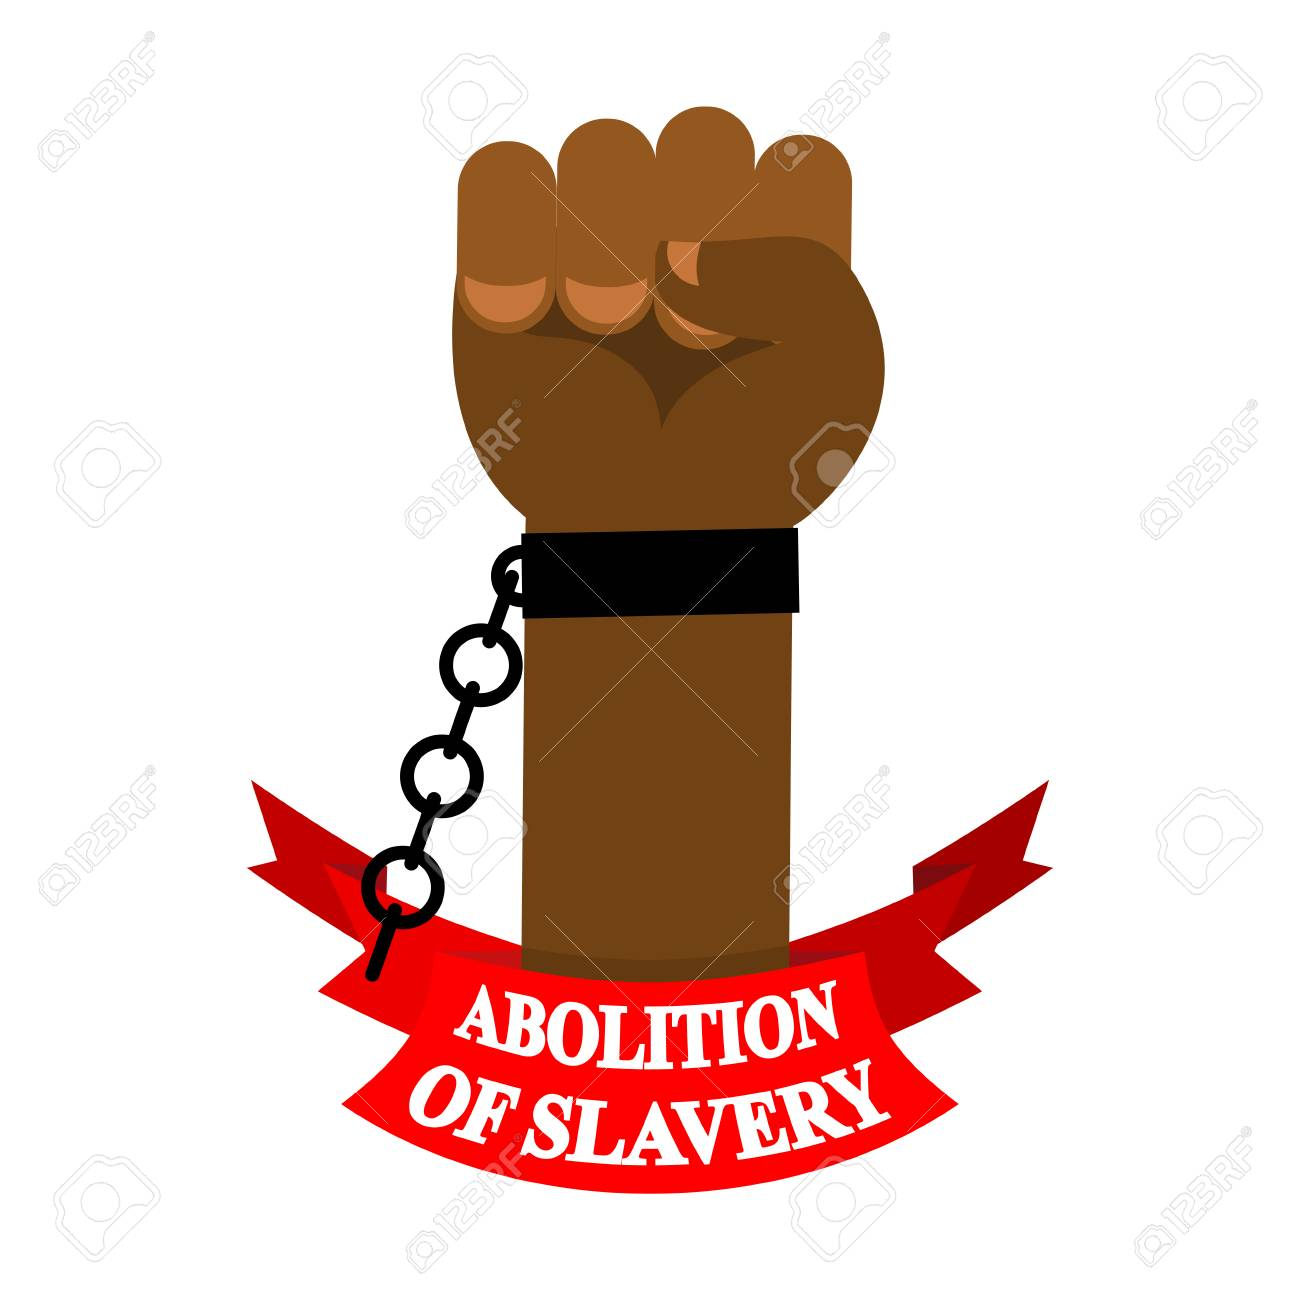 Abolition Of Slavery Arm Slave With Broken Shackles Chain Stock Vector